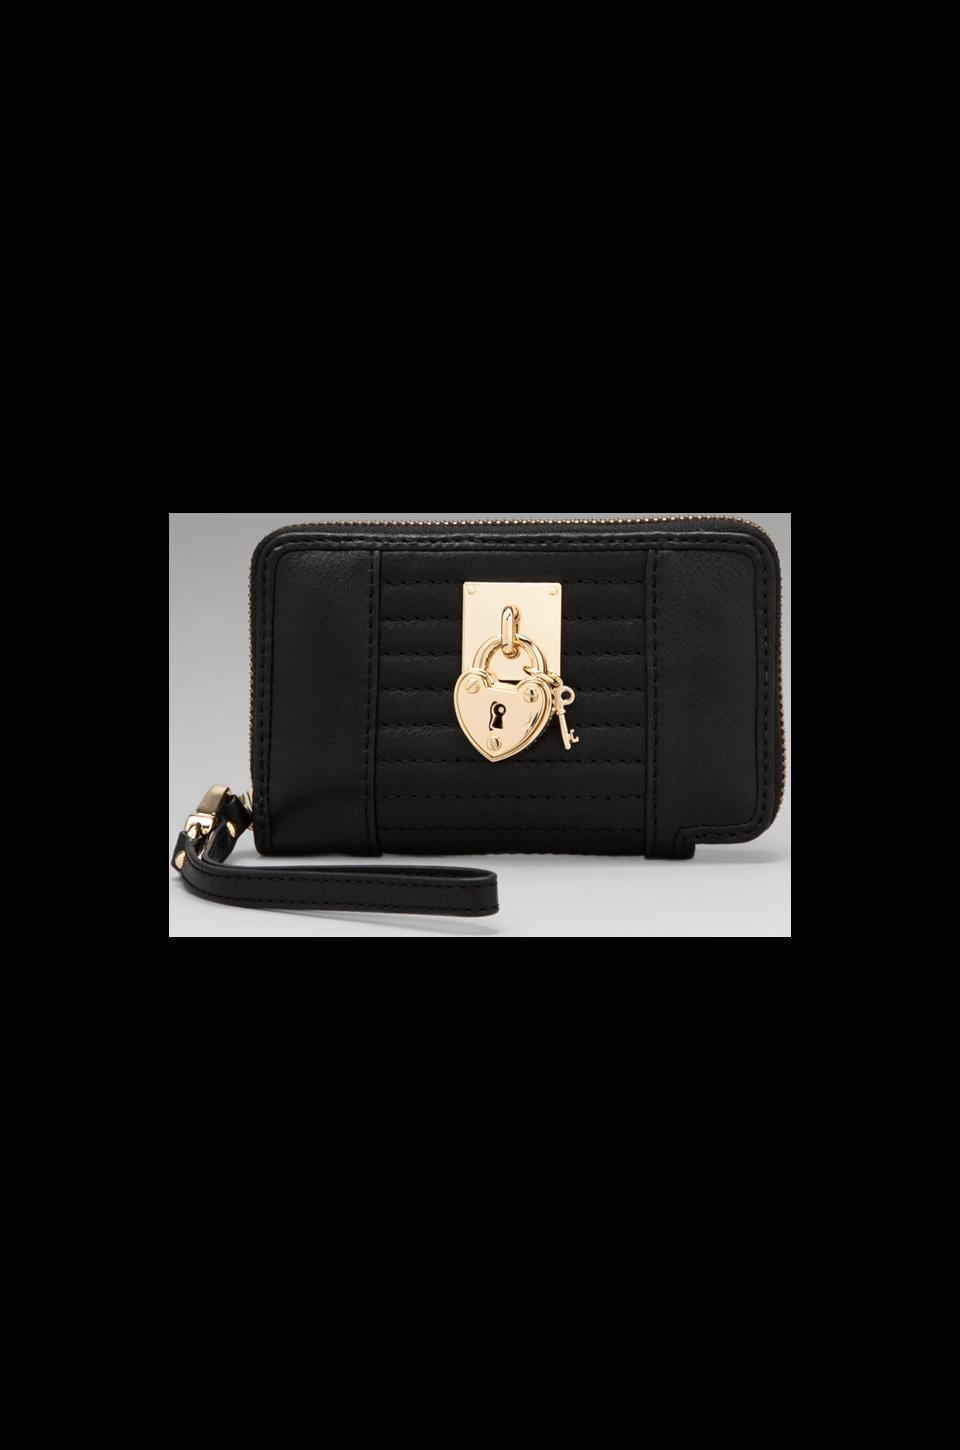 Juicy Couture Signature Leather Tech Wristlet in Black